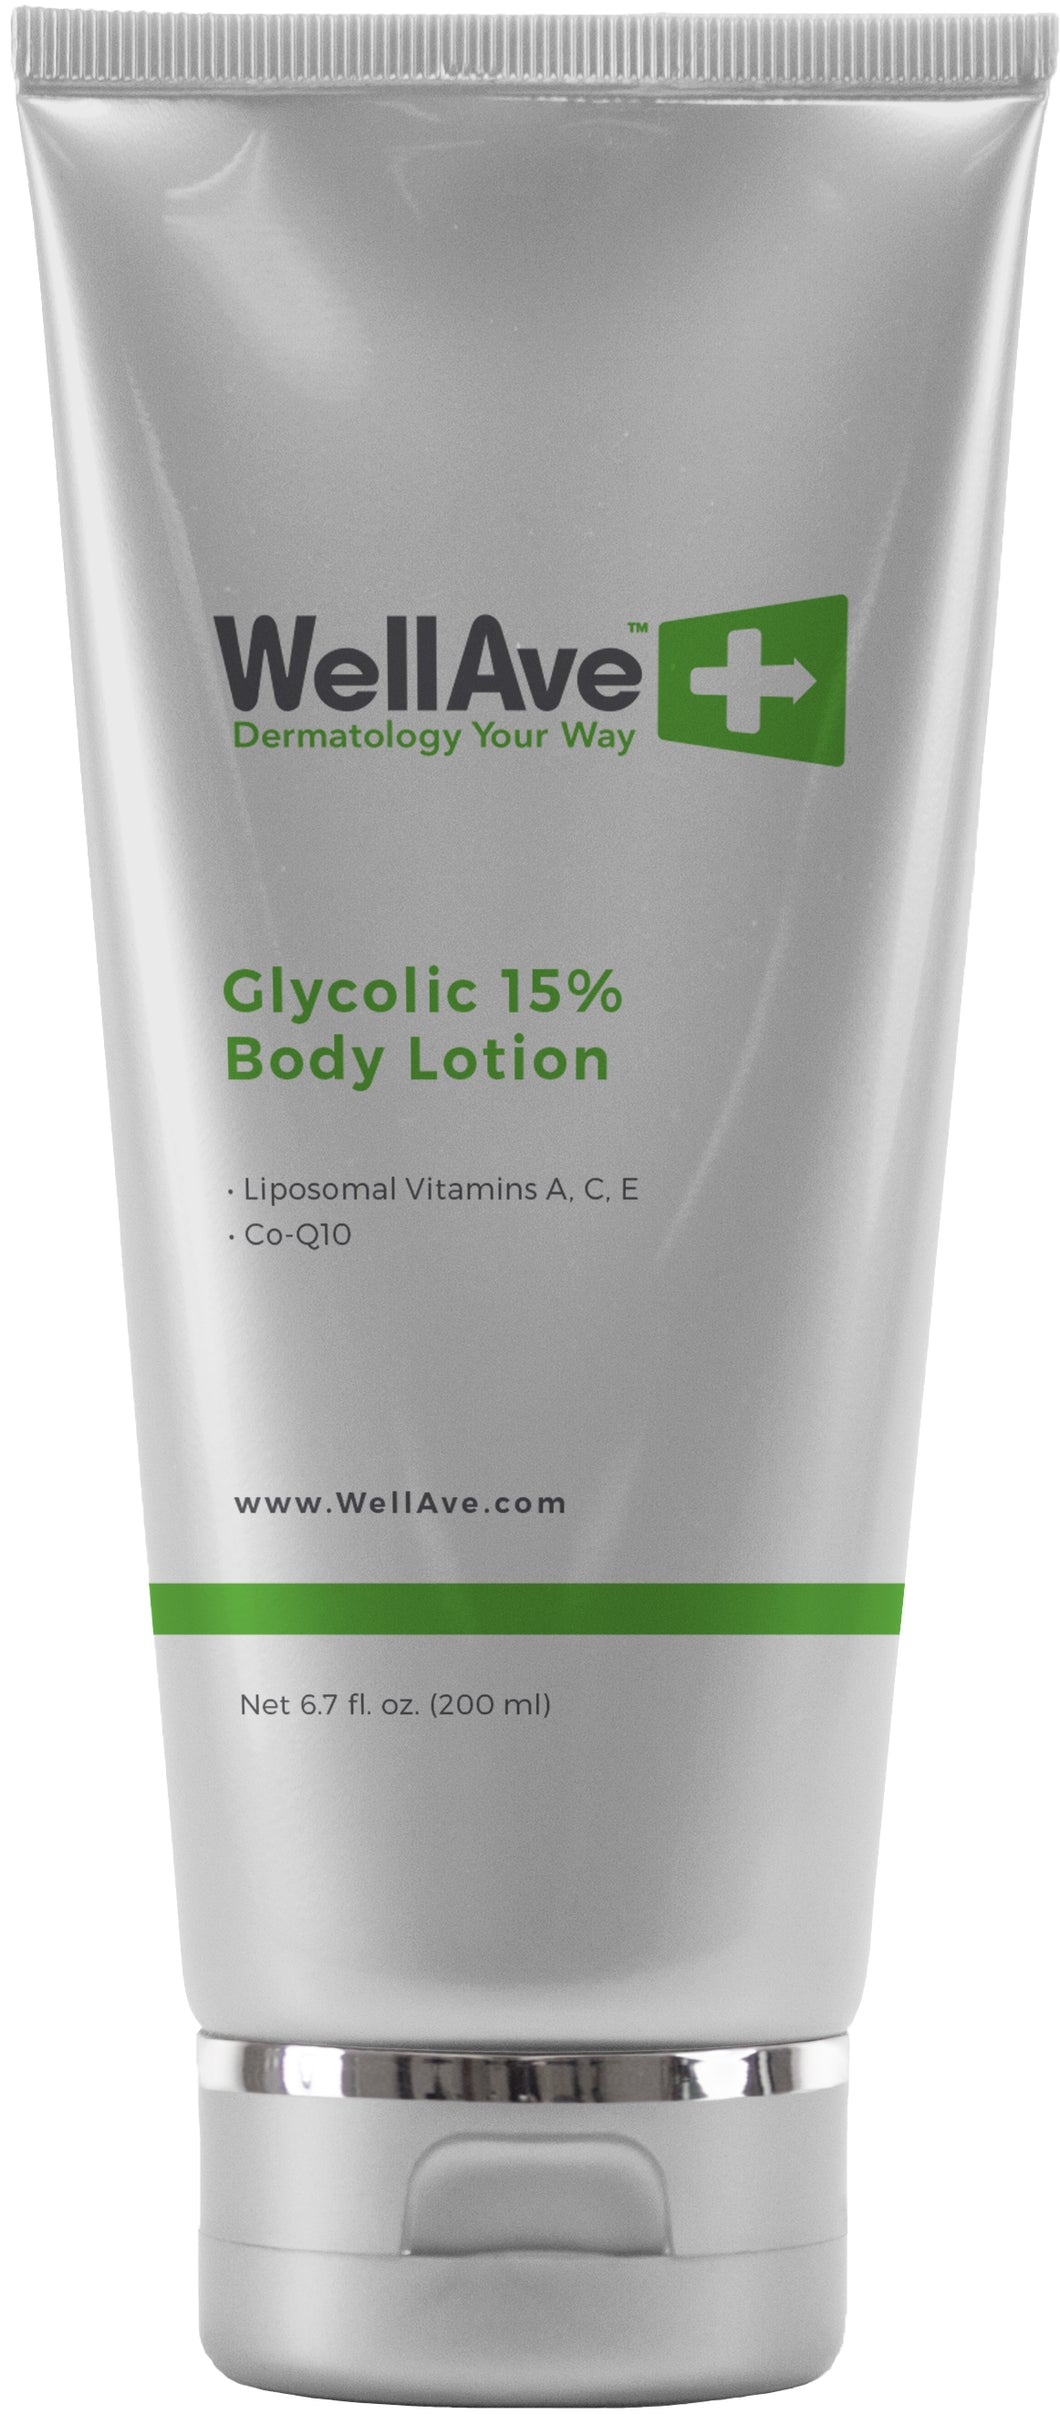 WellAve's Glycolix 15% Body Lotion